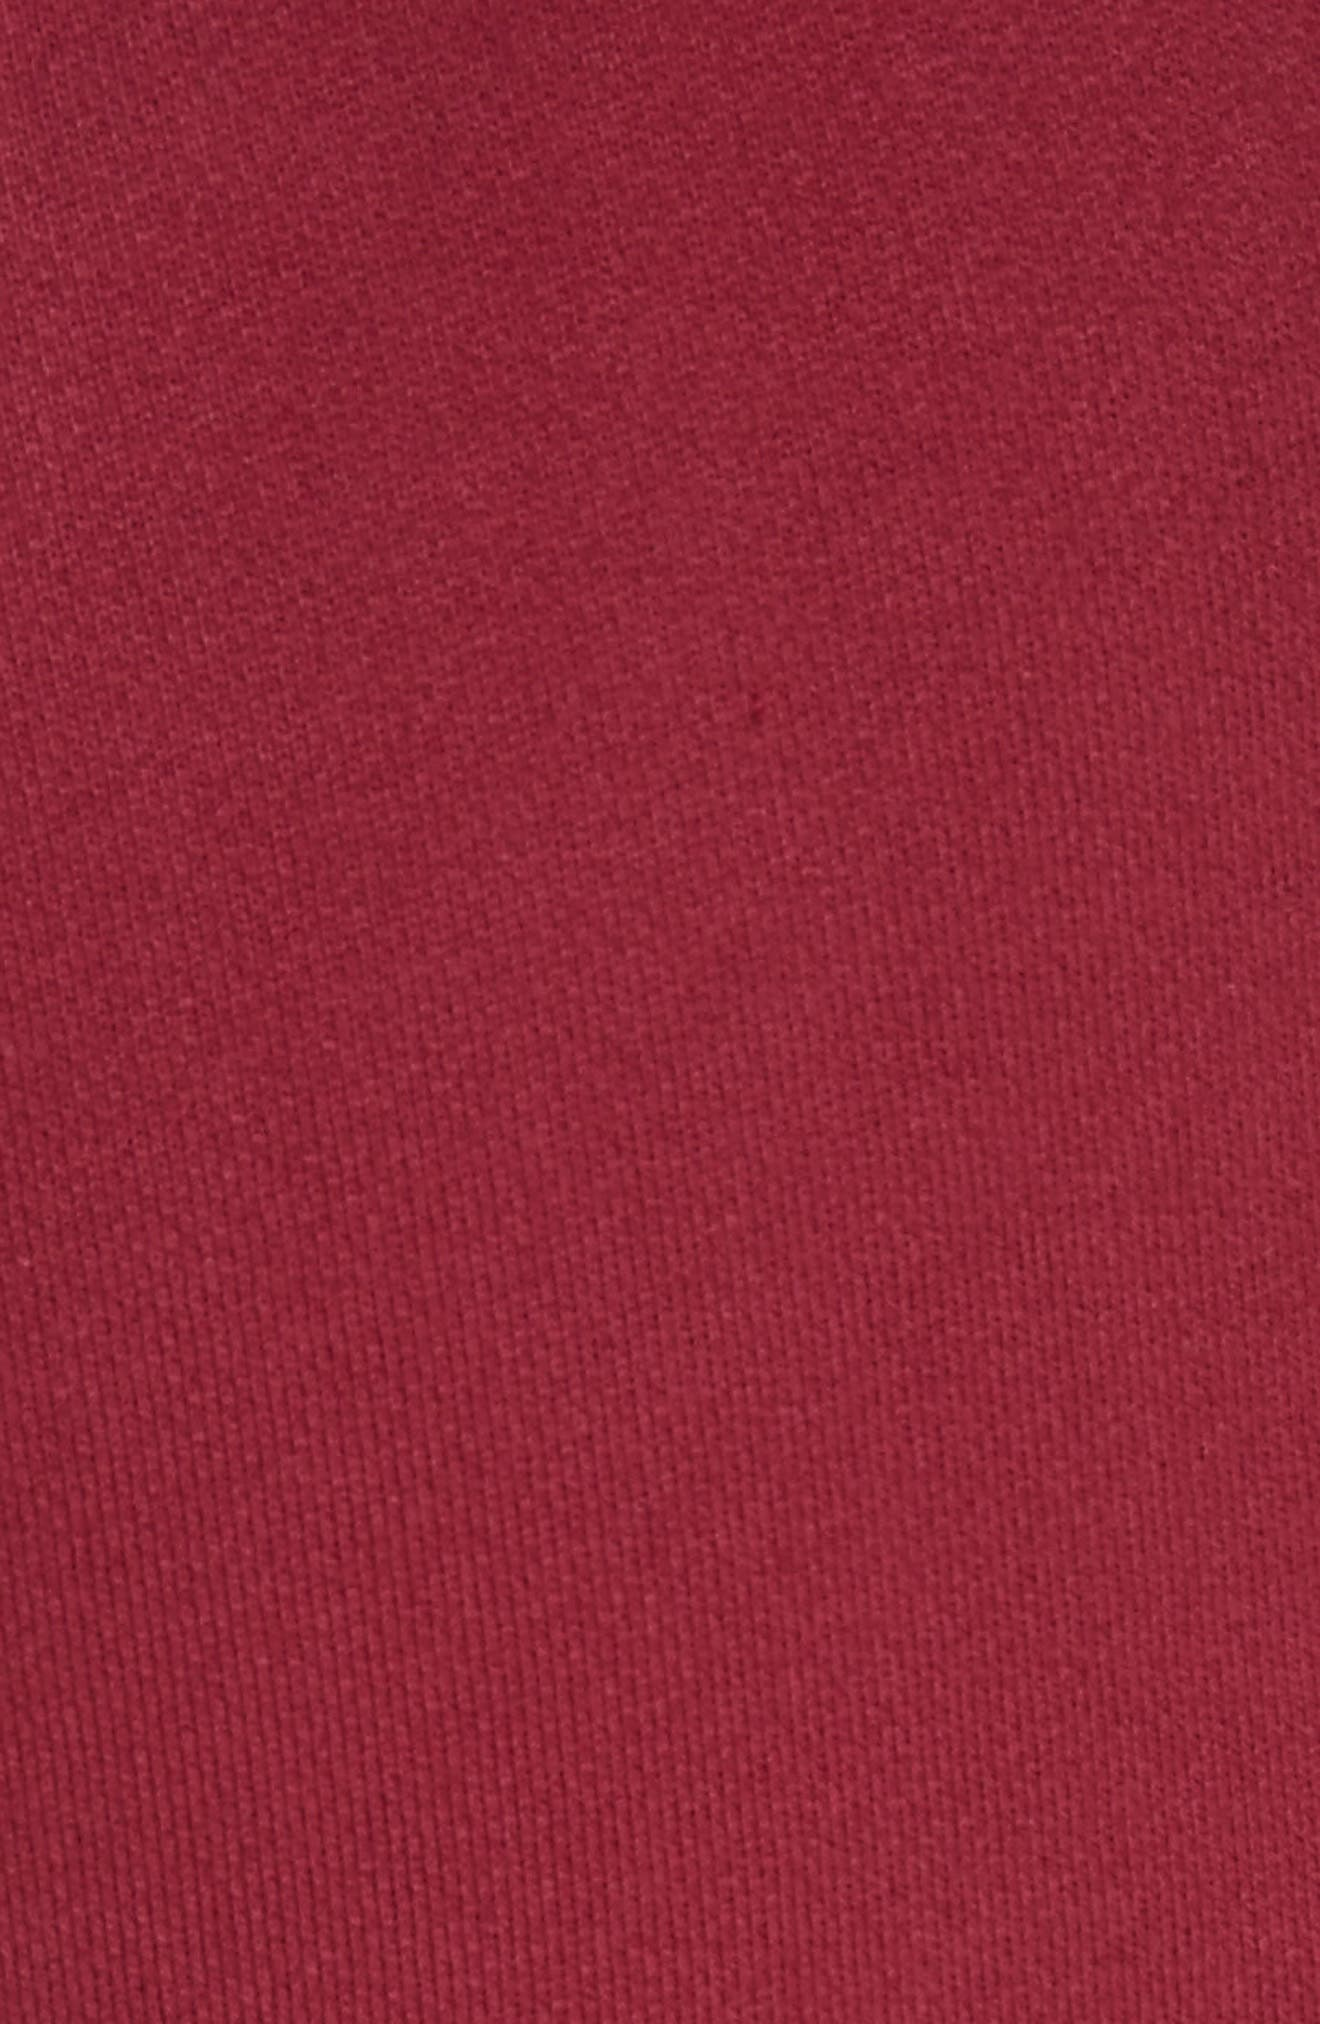 PSWL Sweatpants,                             Alternate thumbnail 5, color,                             Burgundy